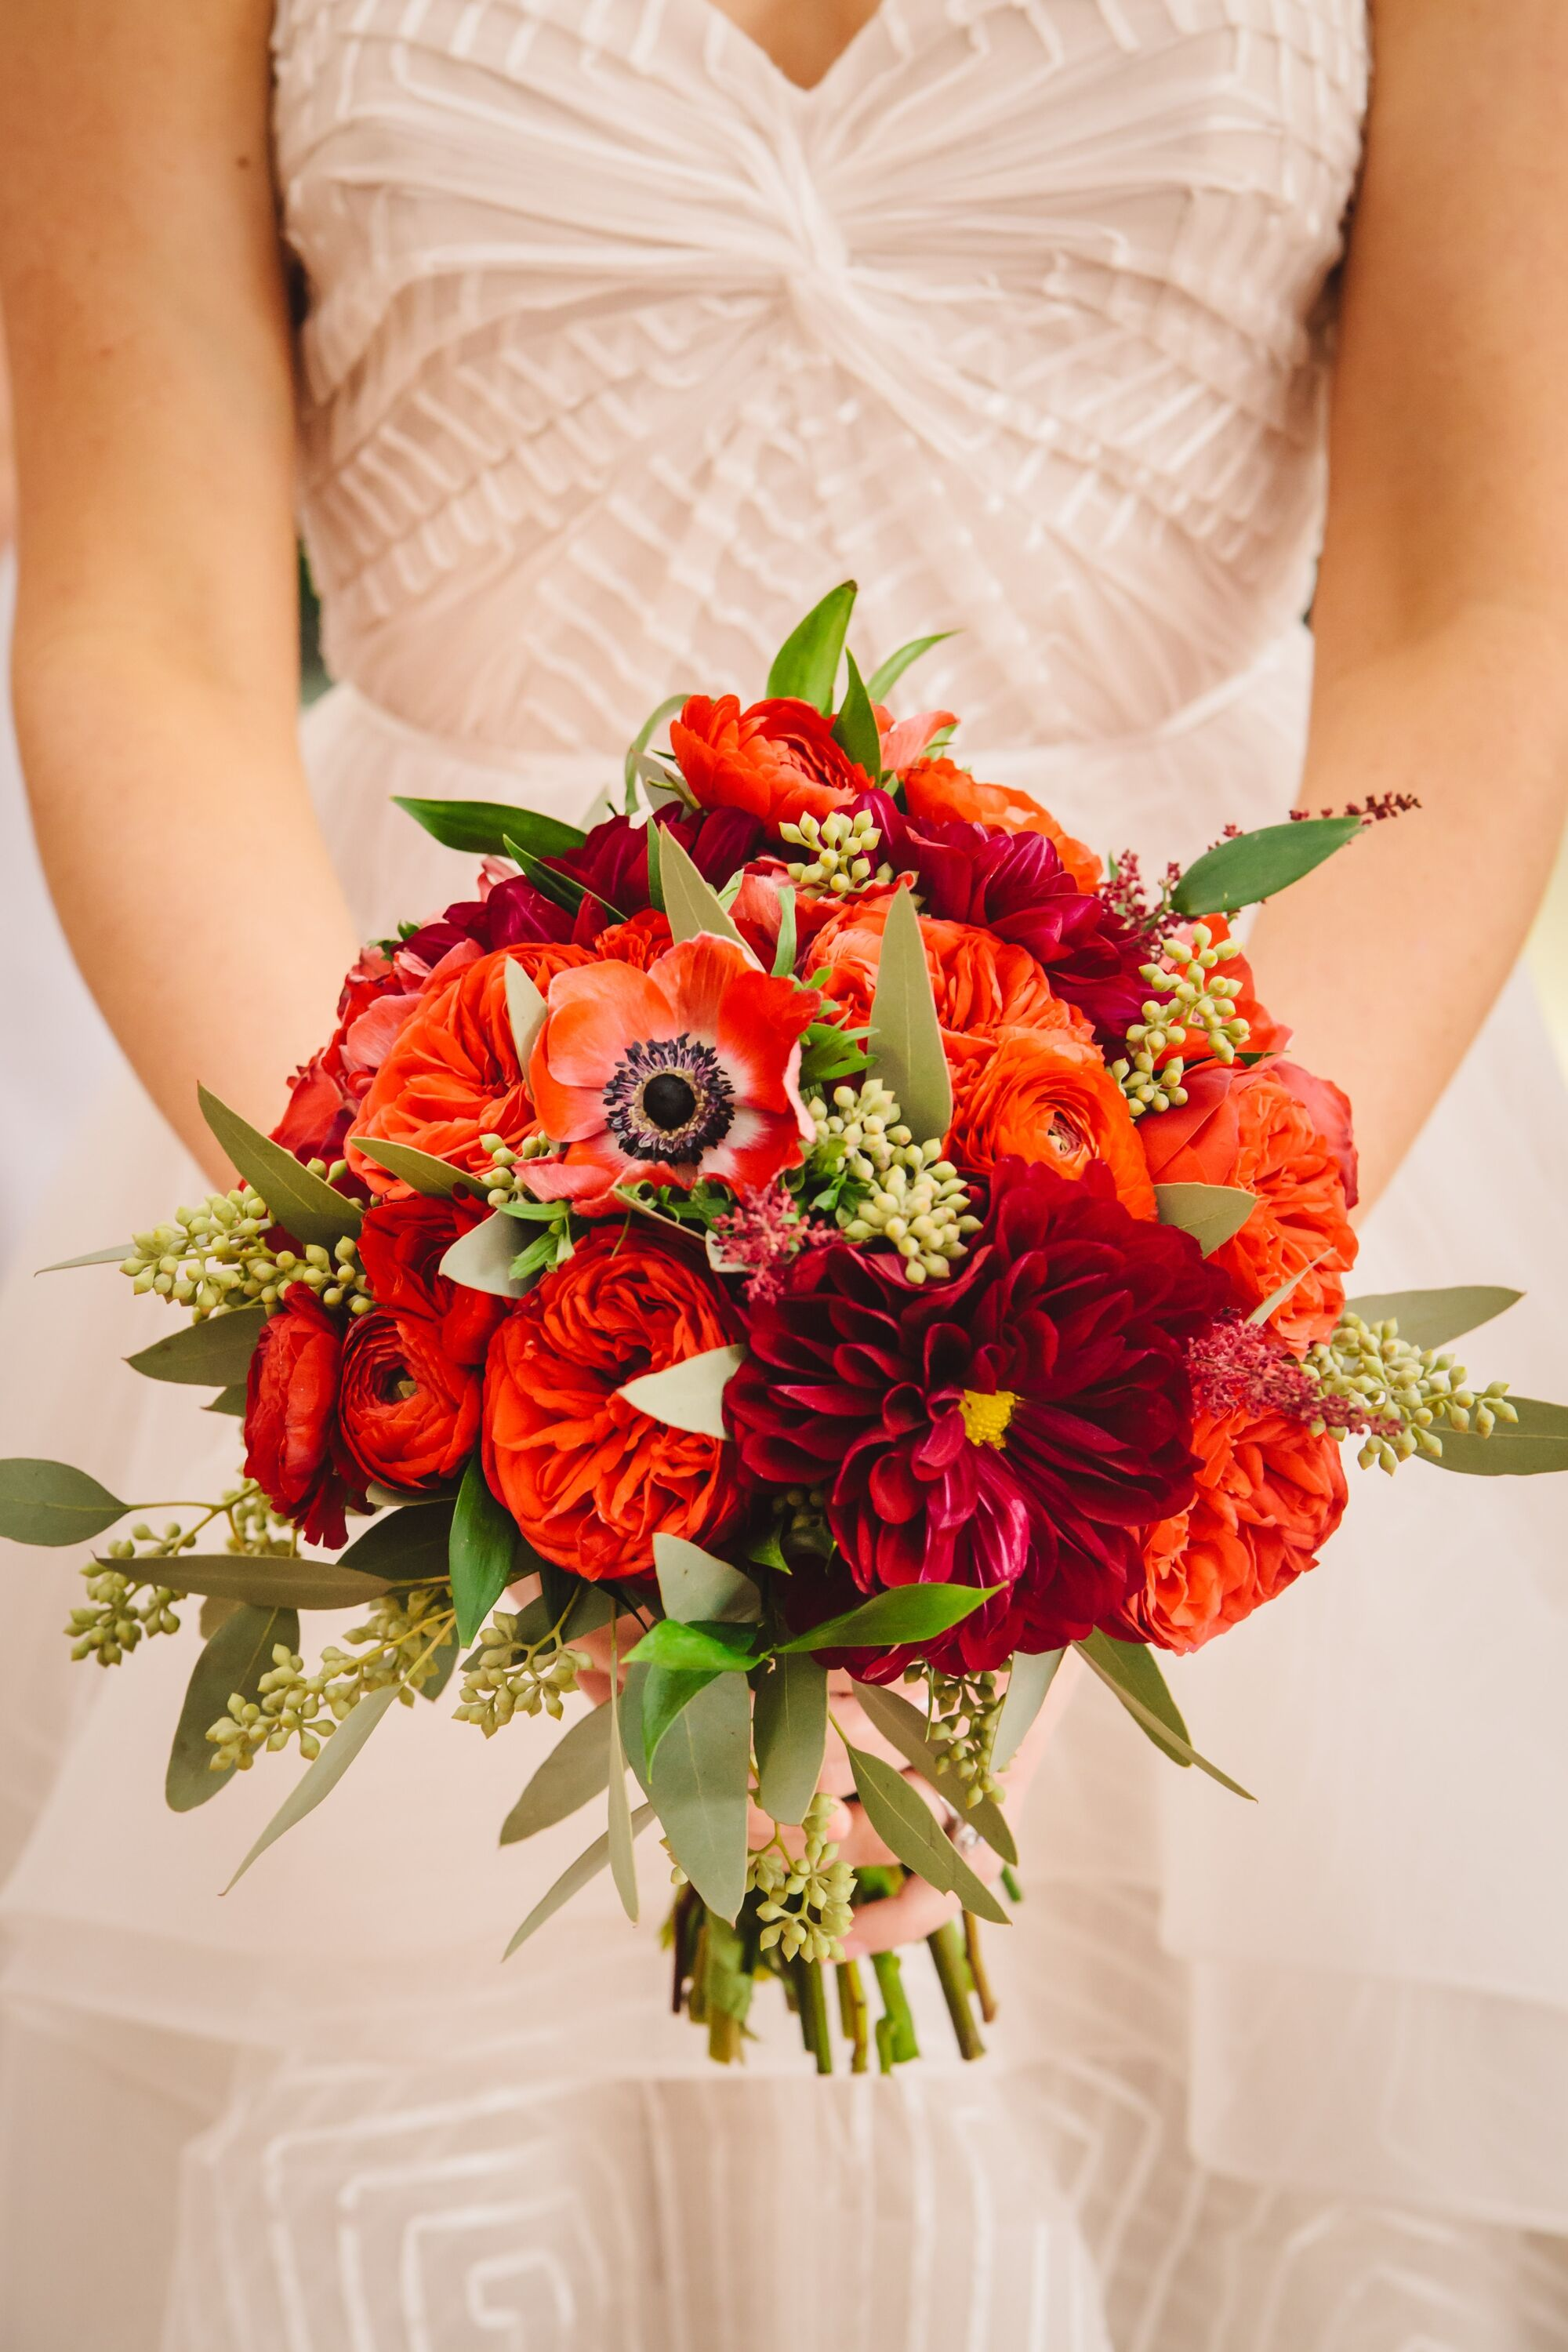 Red Bridal Bouquet With Anemones Garden Roses And Dahlias